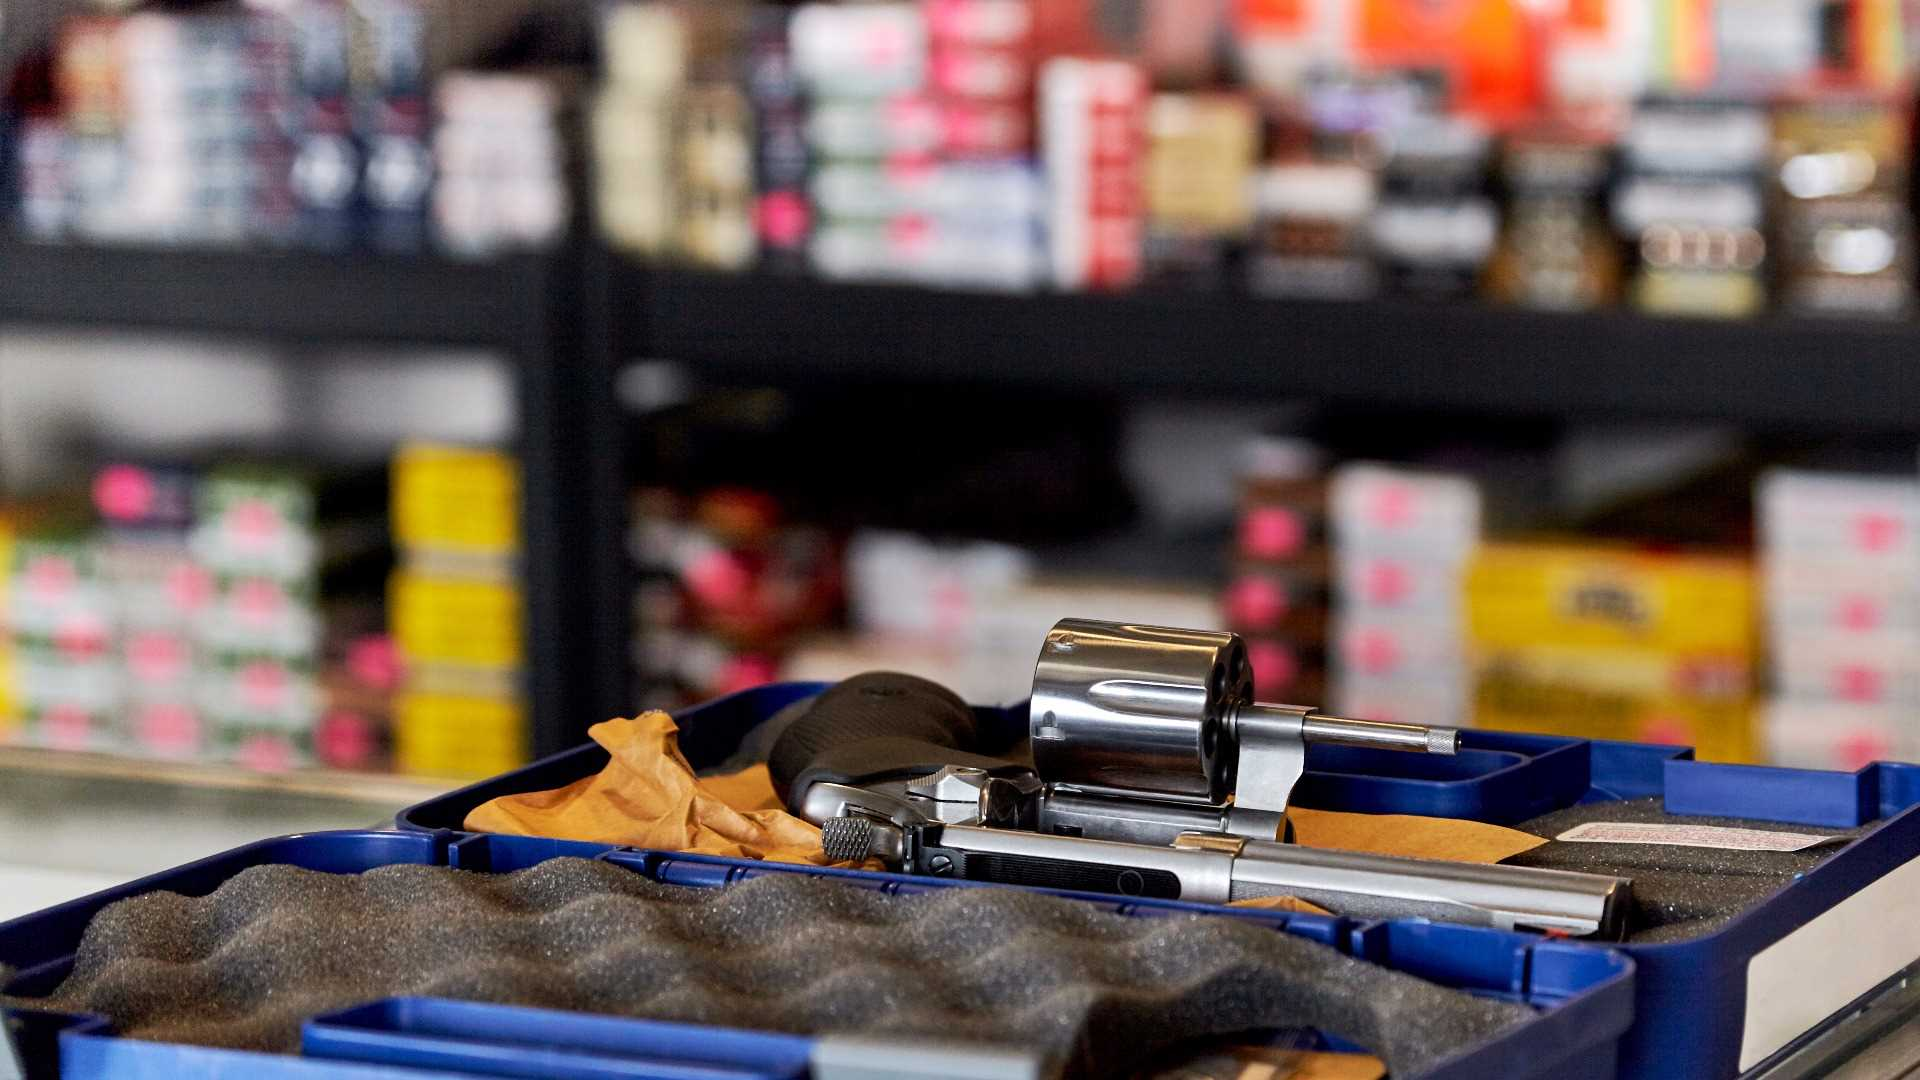 Tacoma to Tax Gun Stores, Pawn Shops Out of Existence